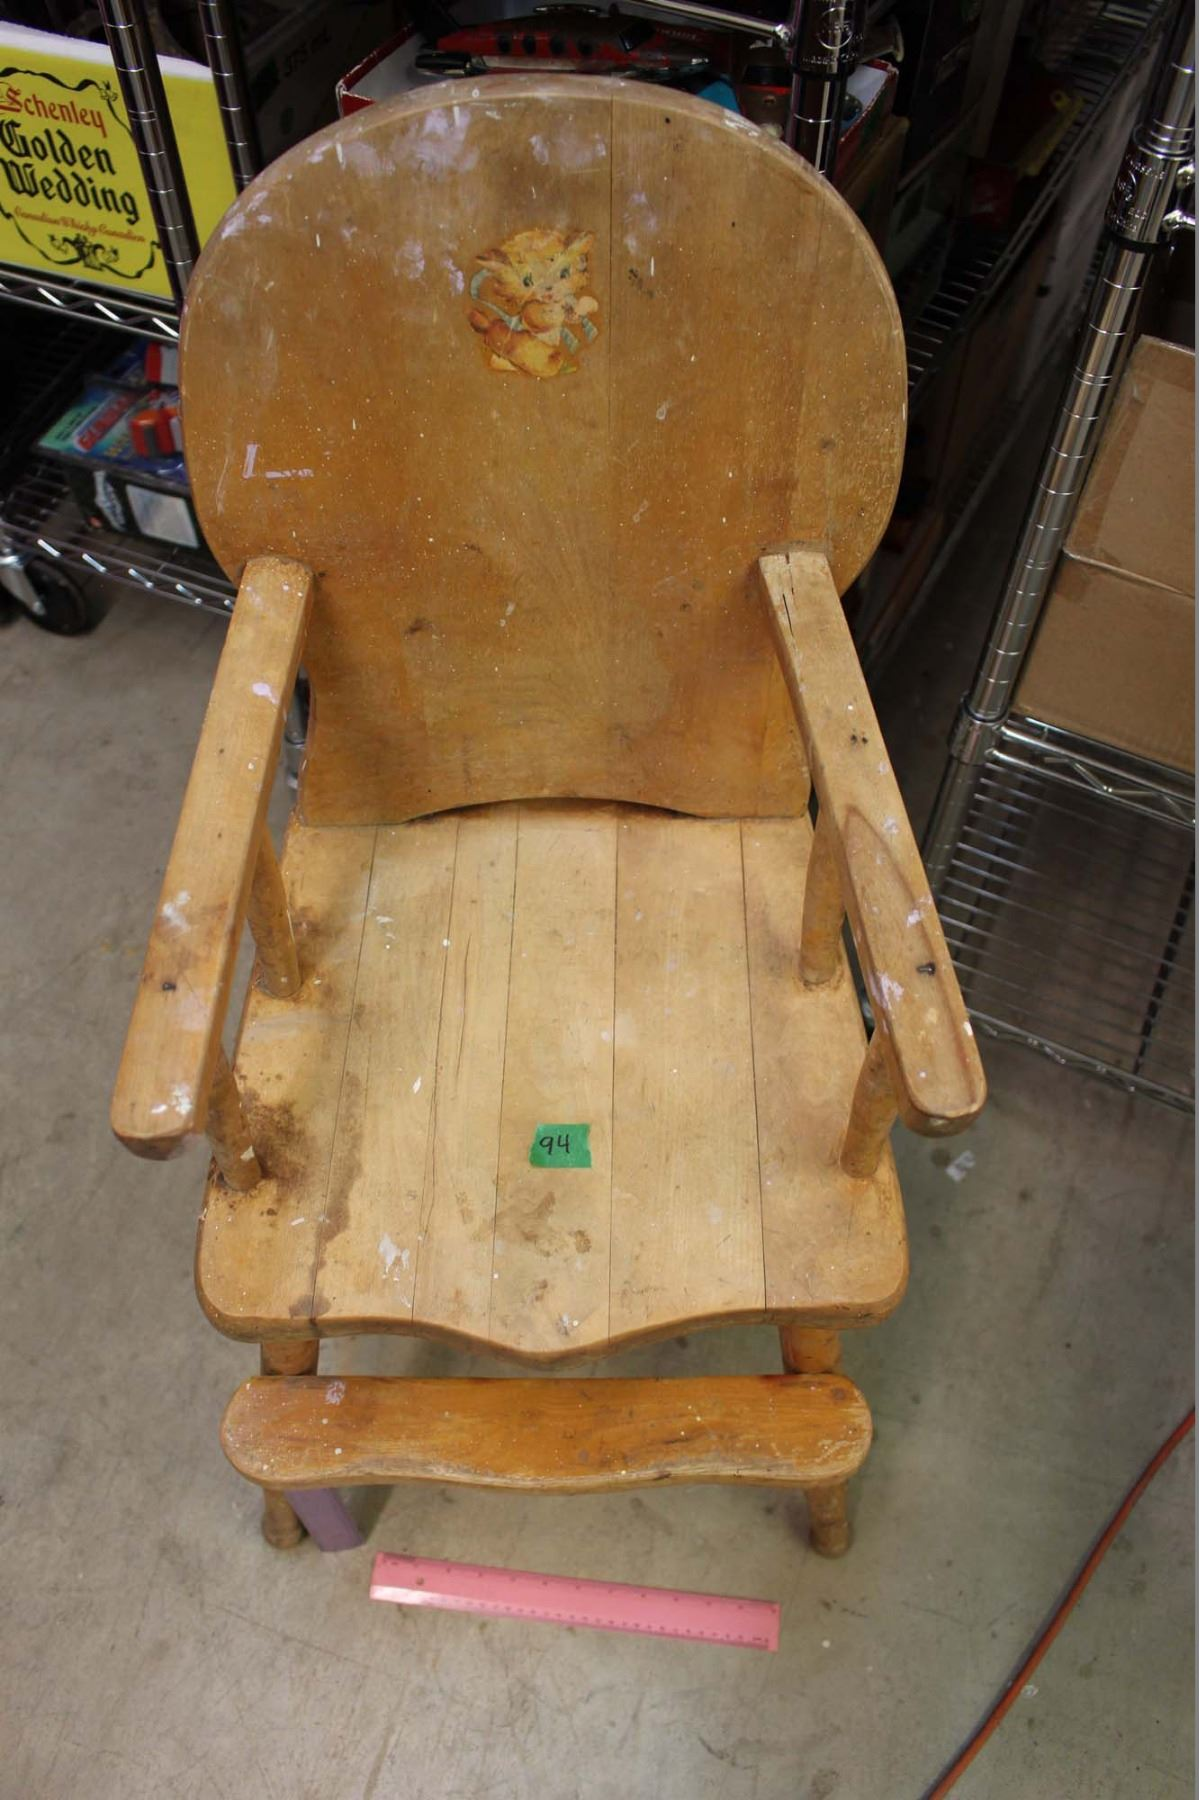 vintage wooden high chair glider replacement parts 18 x 38 image 3